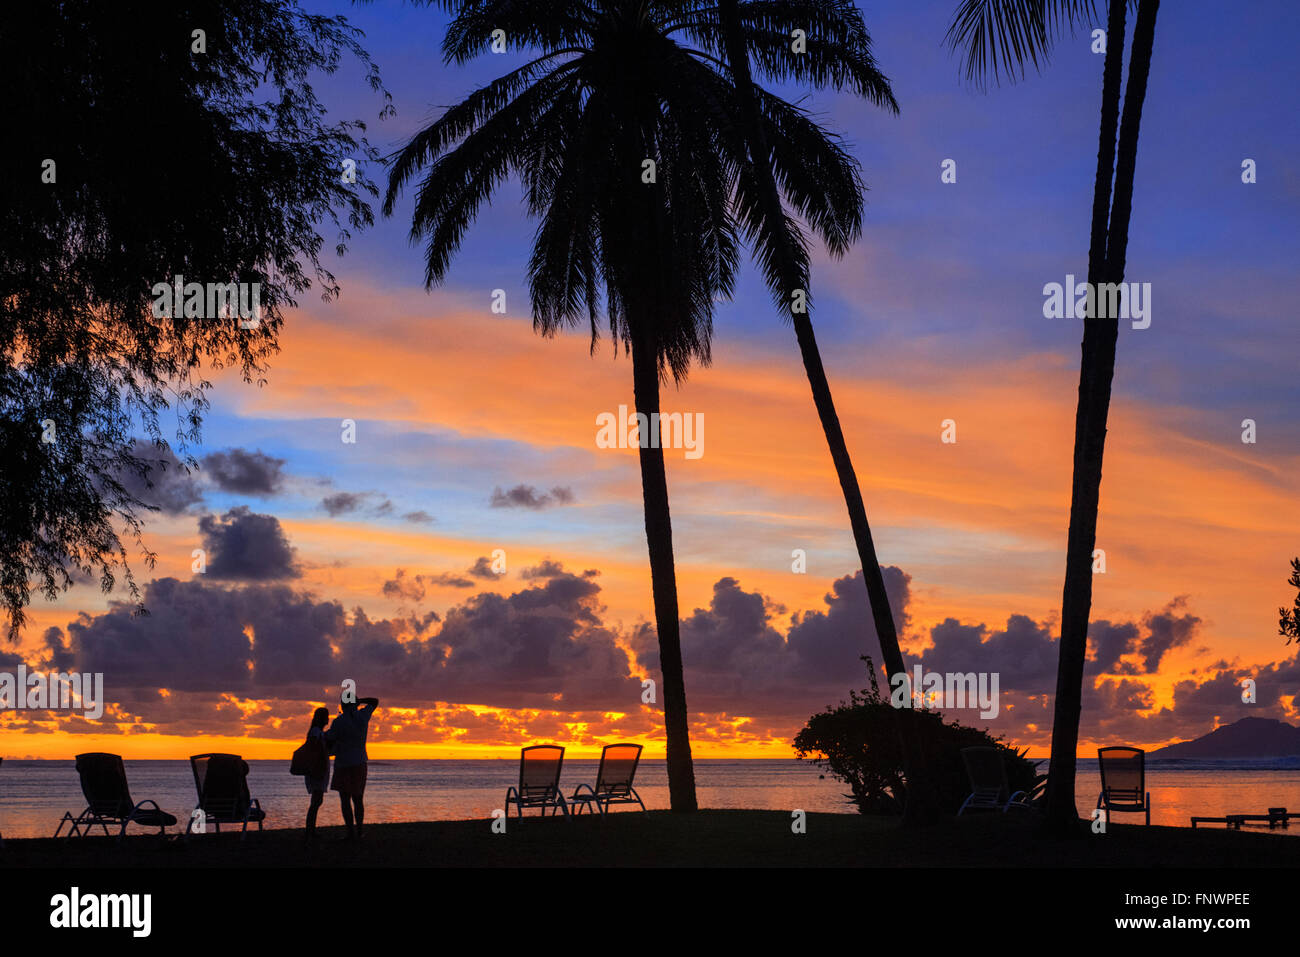 Sunset at Meridien Hotel on the island of Tahiti, French Polynesia, Tahiti Nui, Society Islands, French Polynesia, - Stock Image